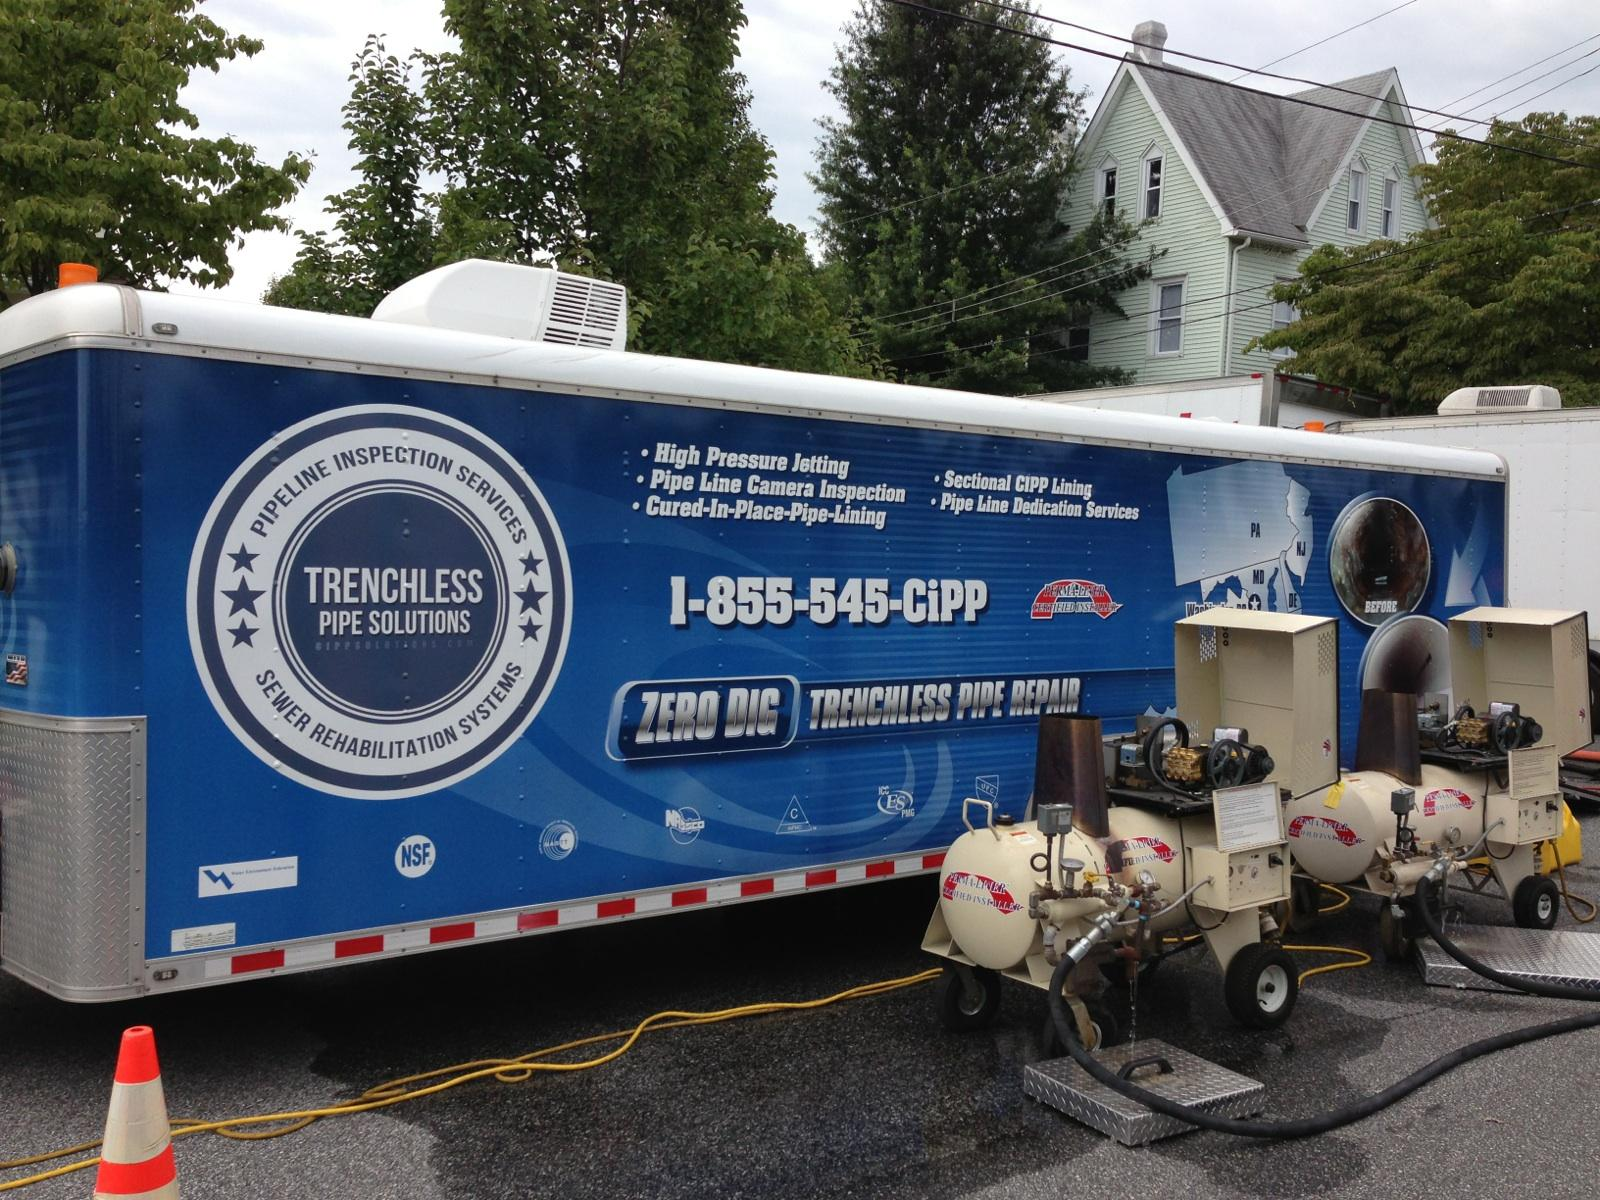 Trenchless Pipe Solutions, LLC has over thirty years of experience